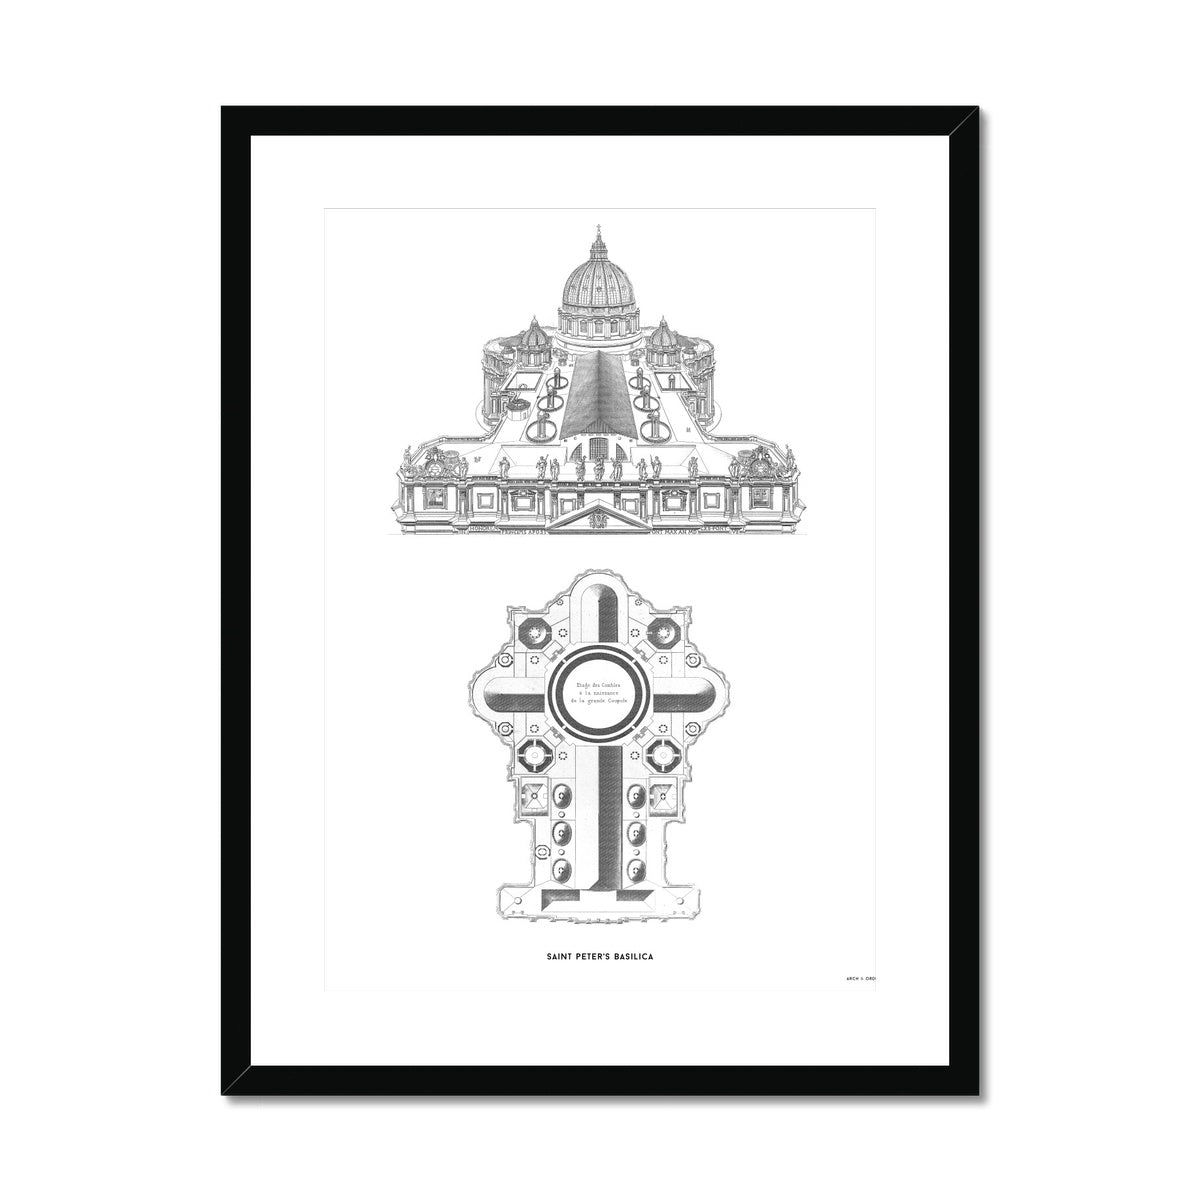 Saint Peter's Basilica - Elevated View - White -  Framed & Mounted Print